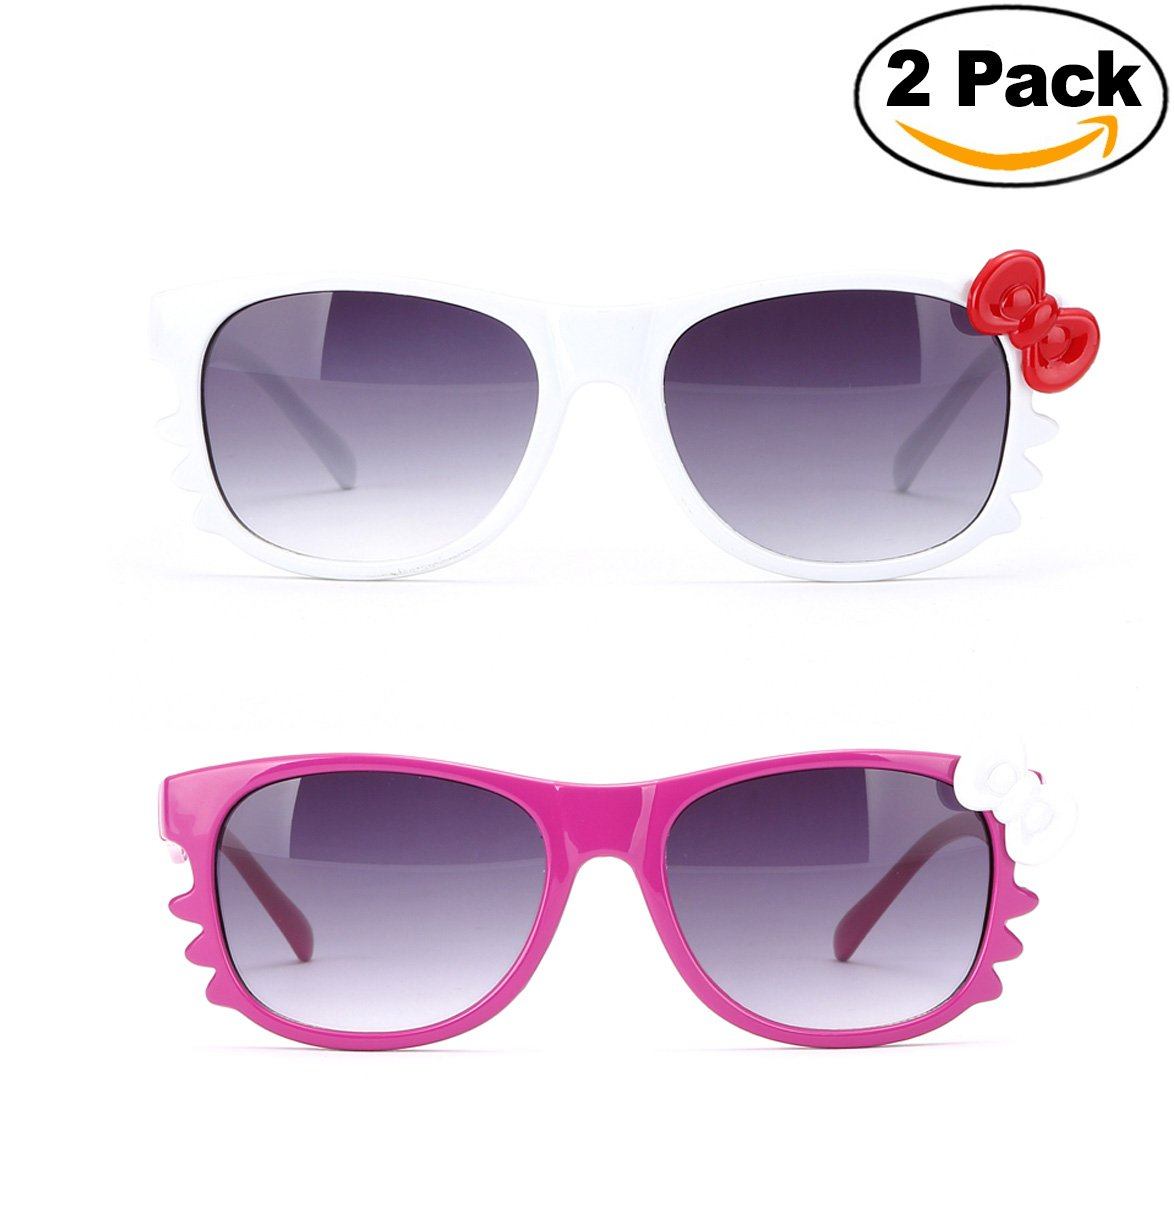 Newbee Fashion - Kyra Kids Retro Hello Kitty w/ Bow and Whiskers Lead-Free Girl Sunglasses (0-5 Years)